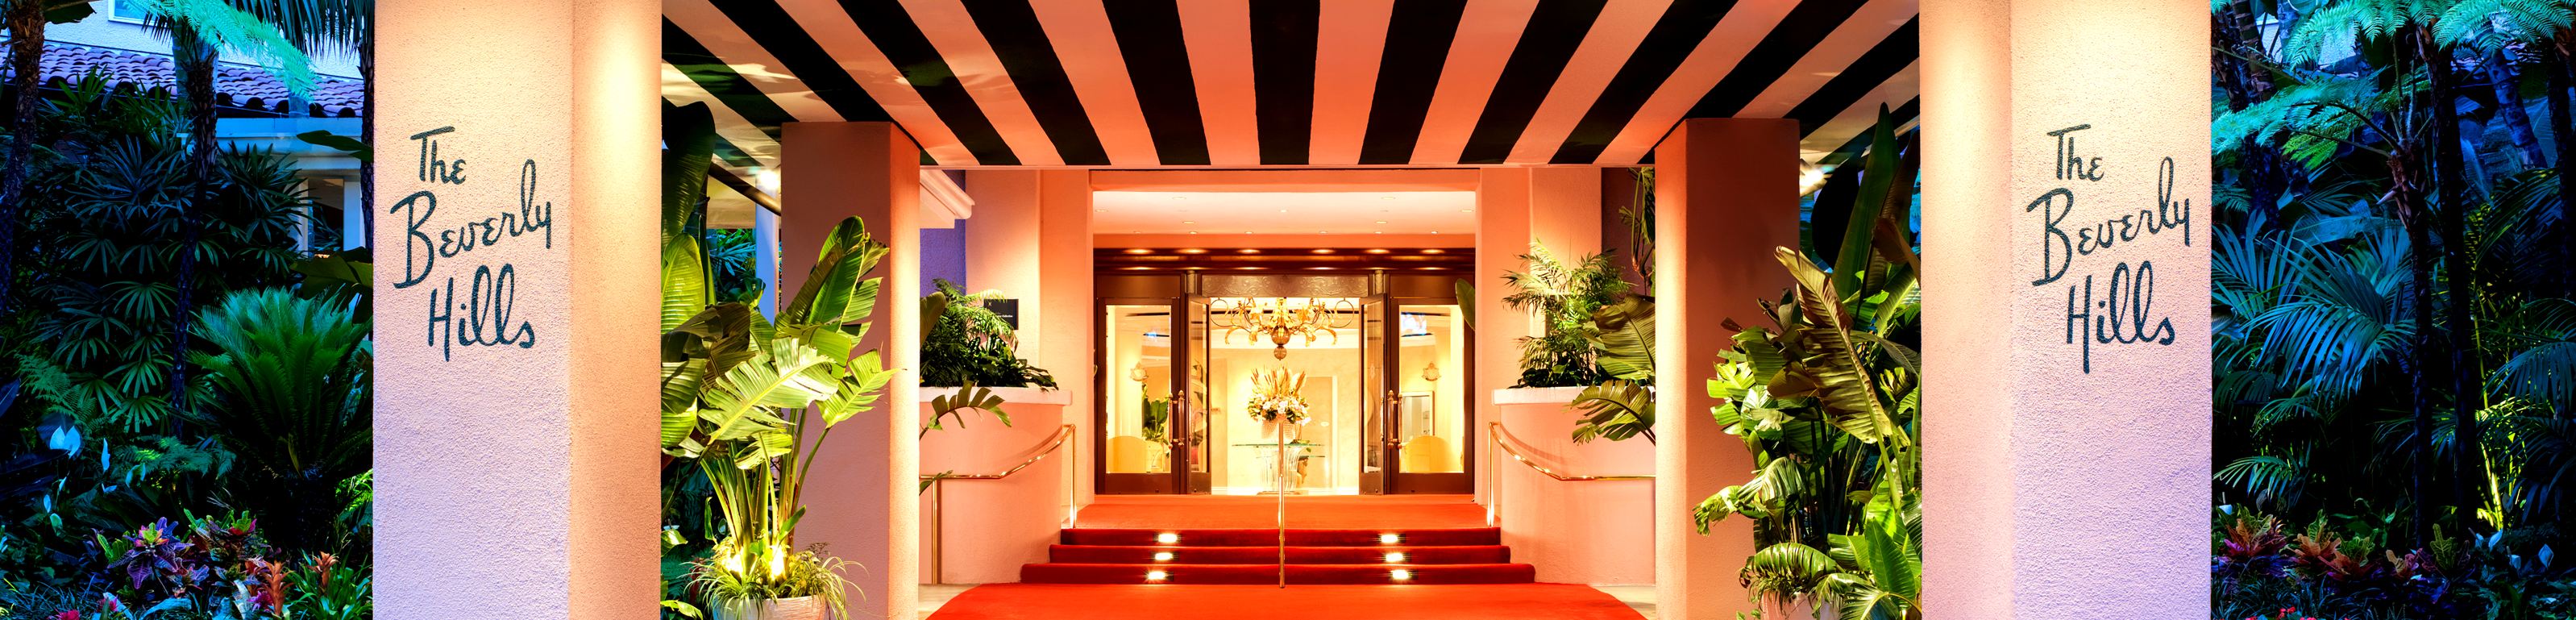 the-beverly-hills-hotel-entrance